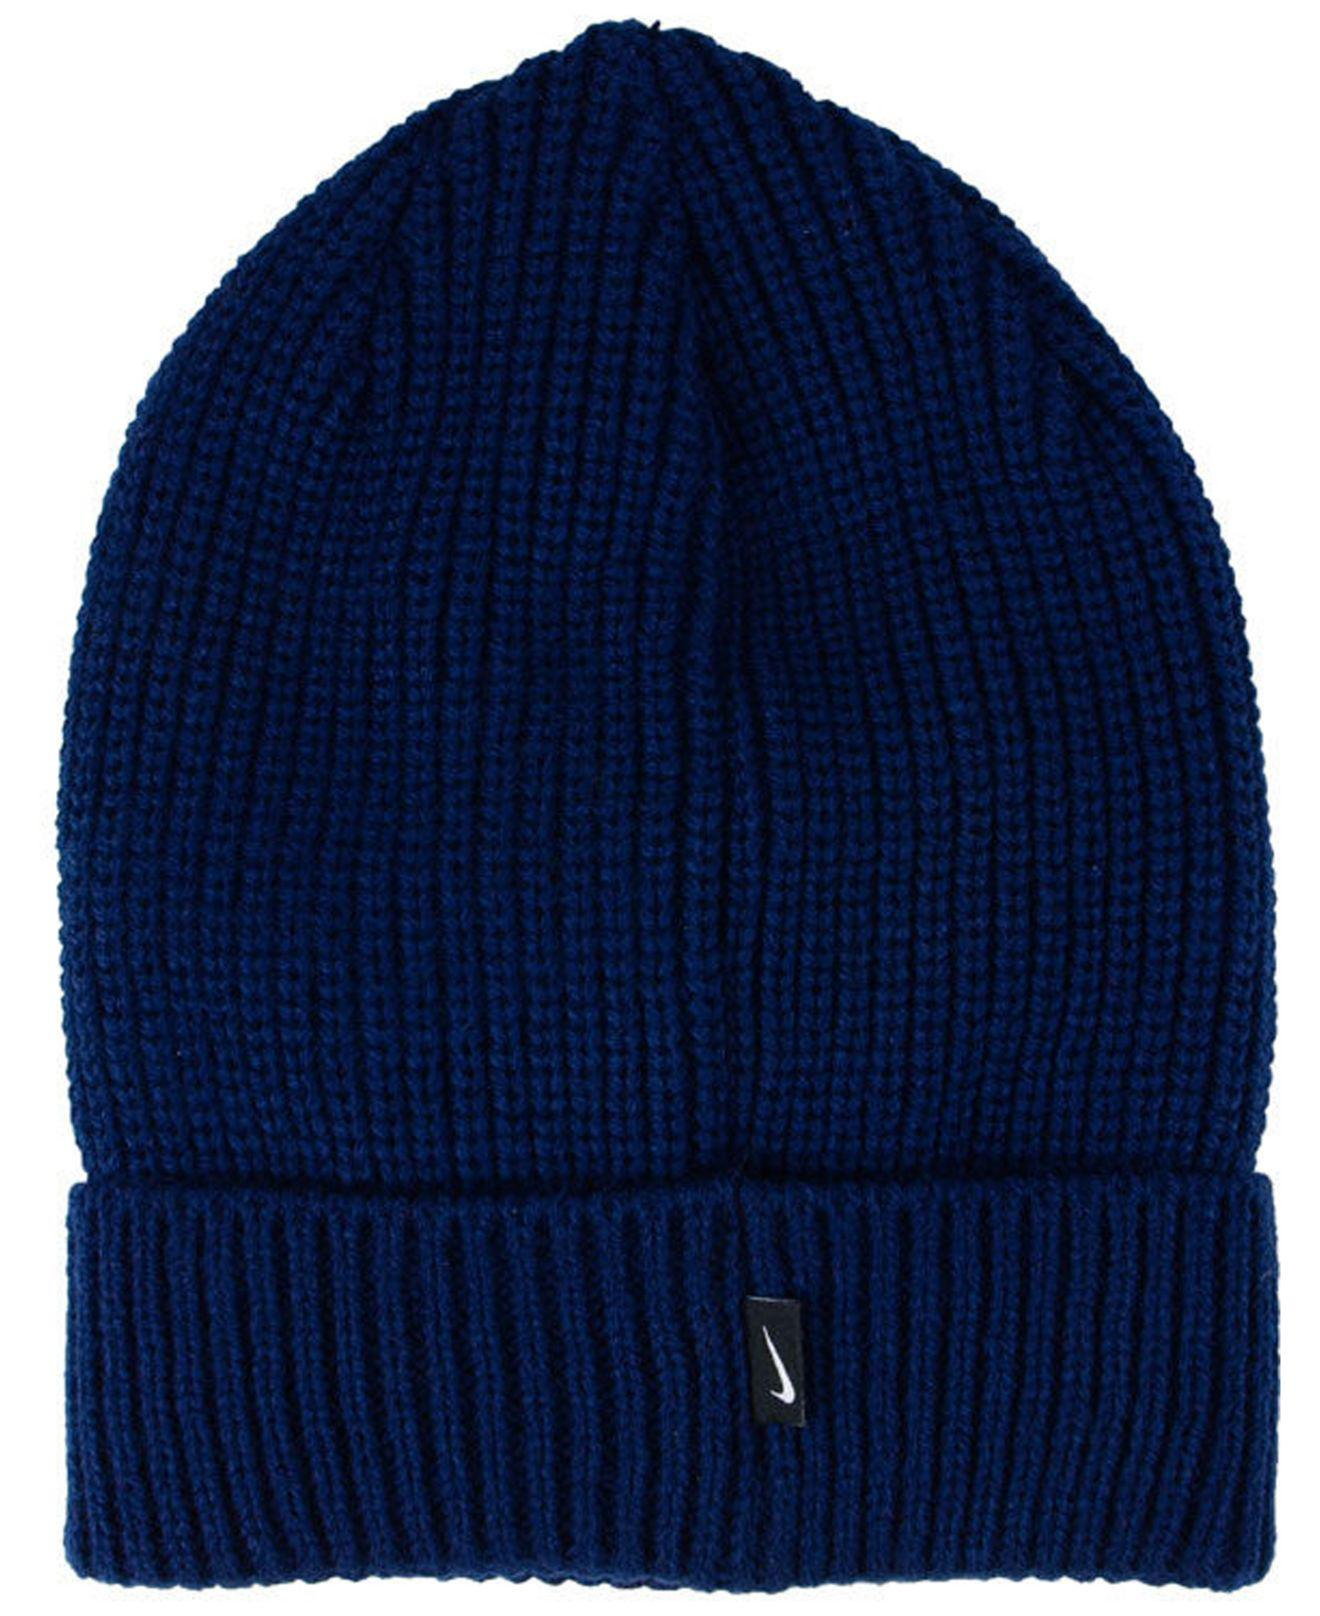 Nike - Blue Cuffed Knit Hat for Men - Lyst. View fullscreen ce038fe02